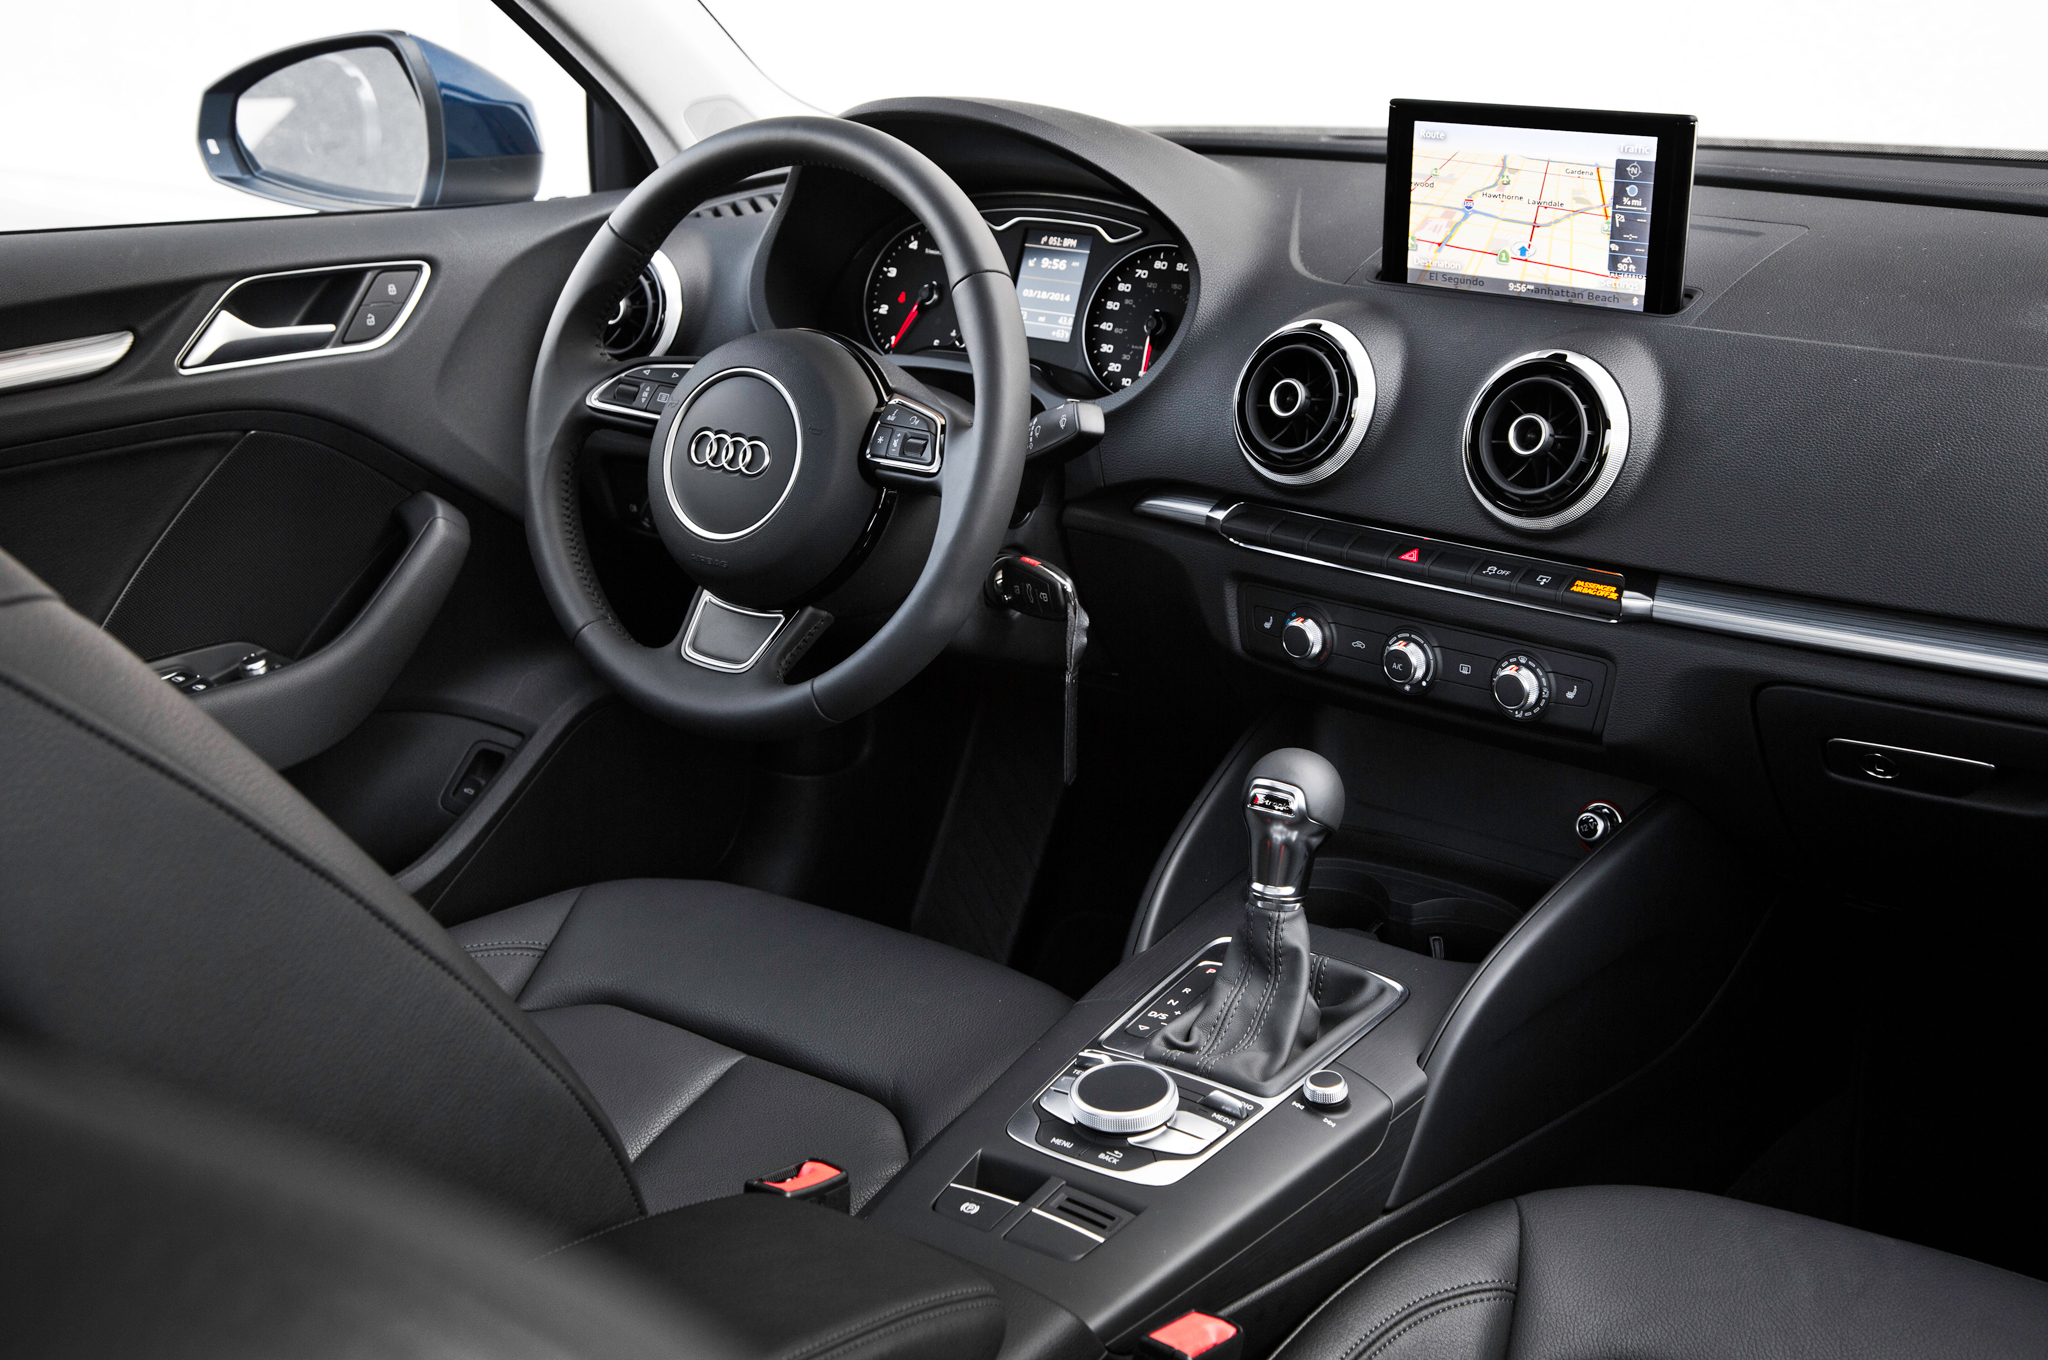 2015 Audi A3 Design White 319 Cars Performance Reviews and